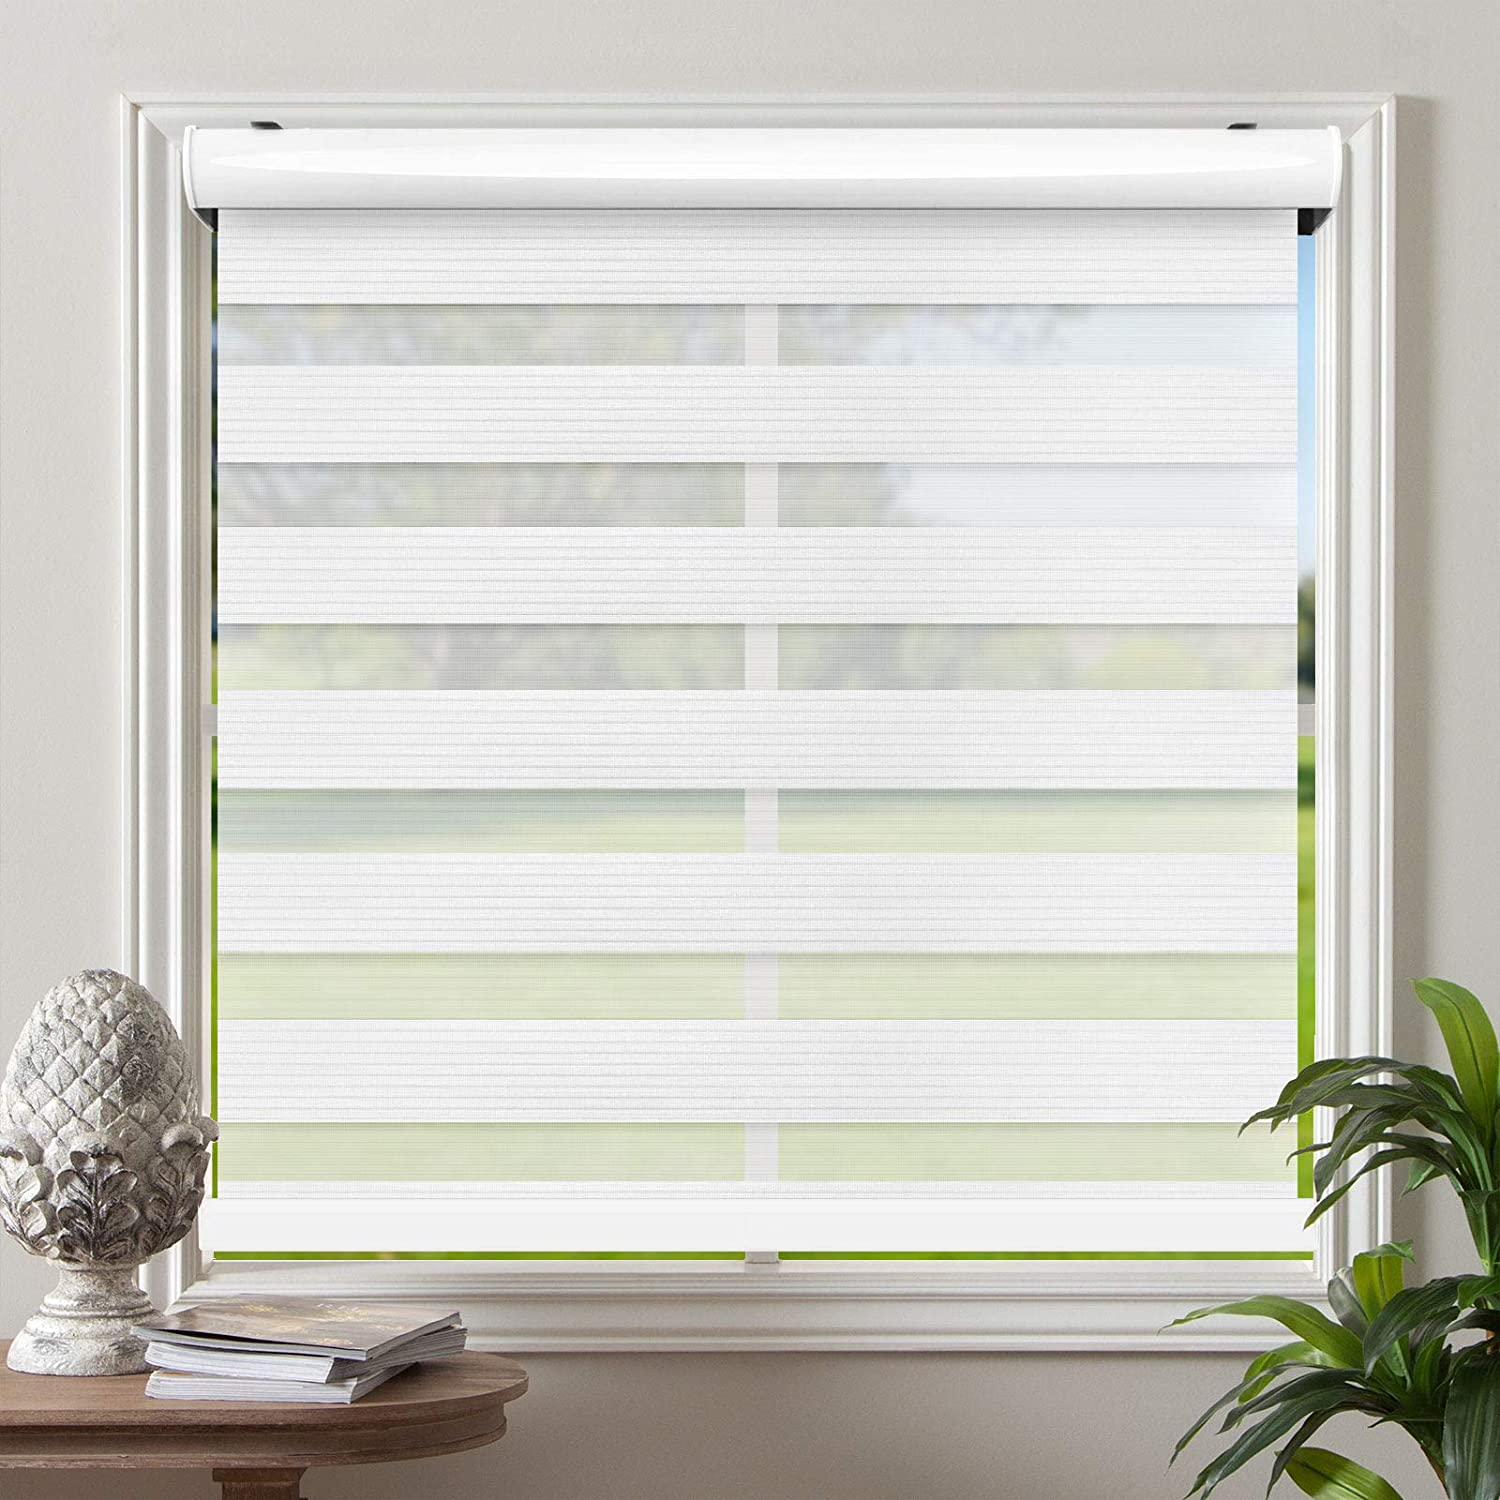 Amazon Com Biltek Cordless Zebra Roller Blinds Sheer Shades Free Stop Combi Blinds Dual Layer Sheer Or Privacy White 50 W X 72 H Home Kitchen